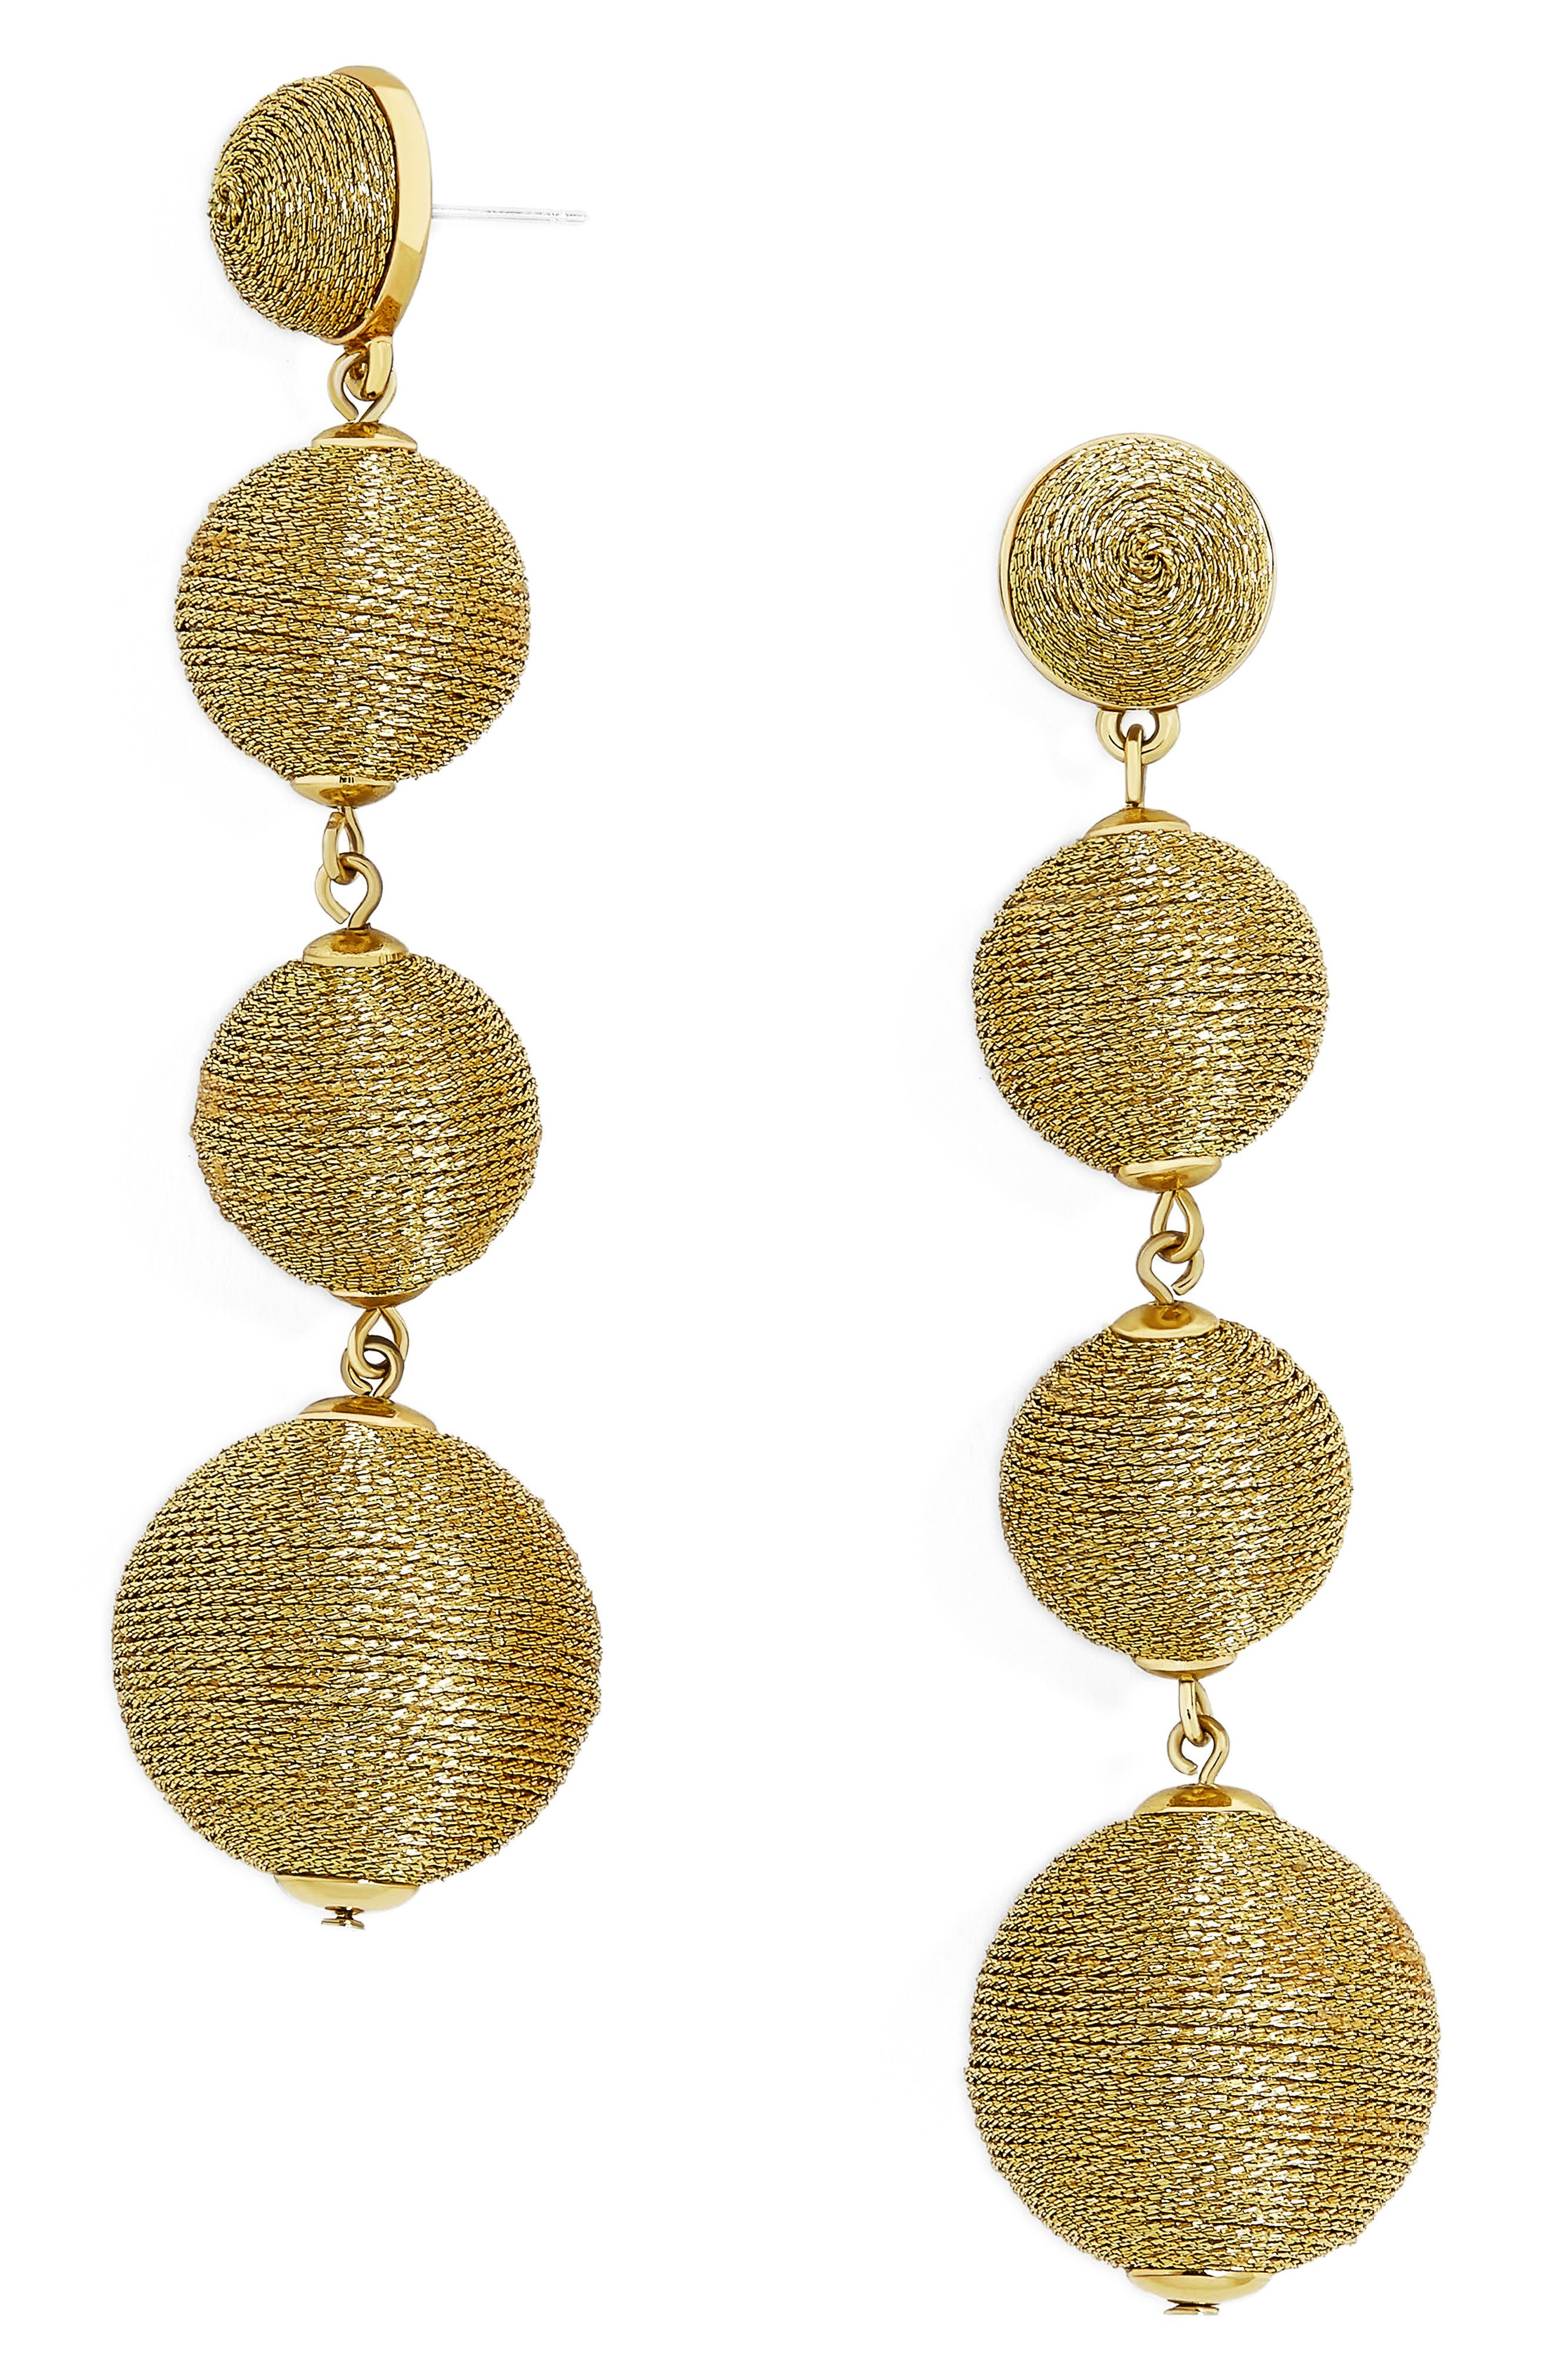 Main Image - BaubleBar Criselda Ball Shoulder Duster Earrings